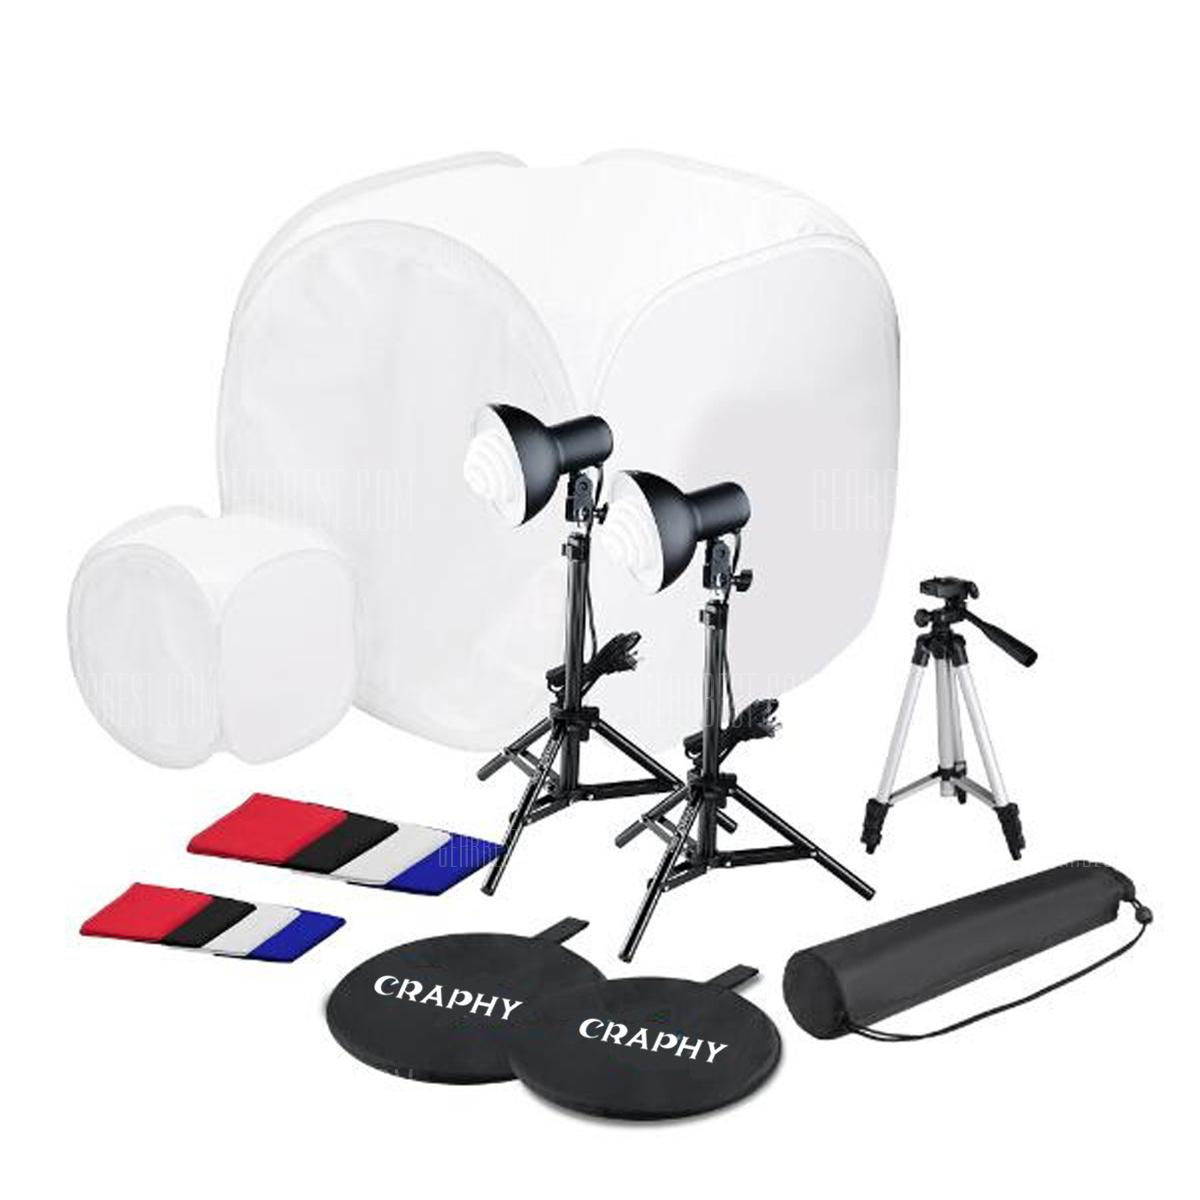 Kit Craphy SHLP - 045 SL - 001 foto studio LED rasvjeta za bljesak - BLACK